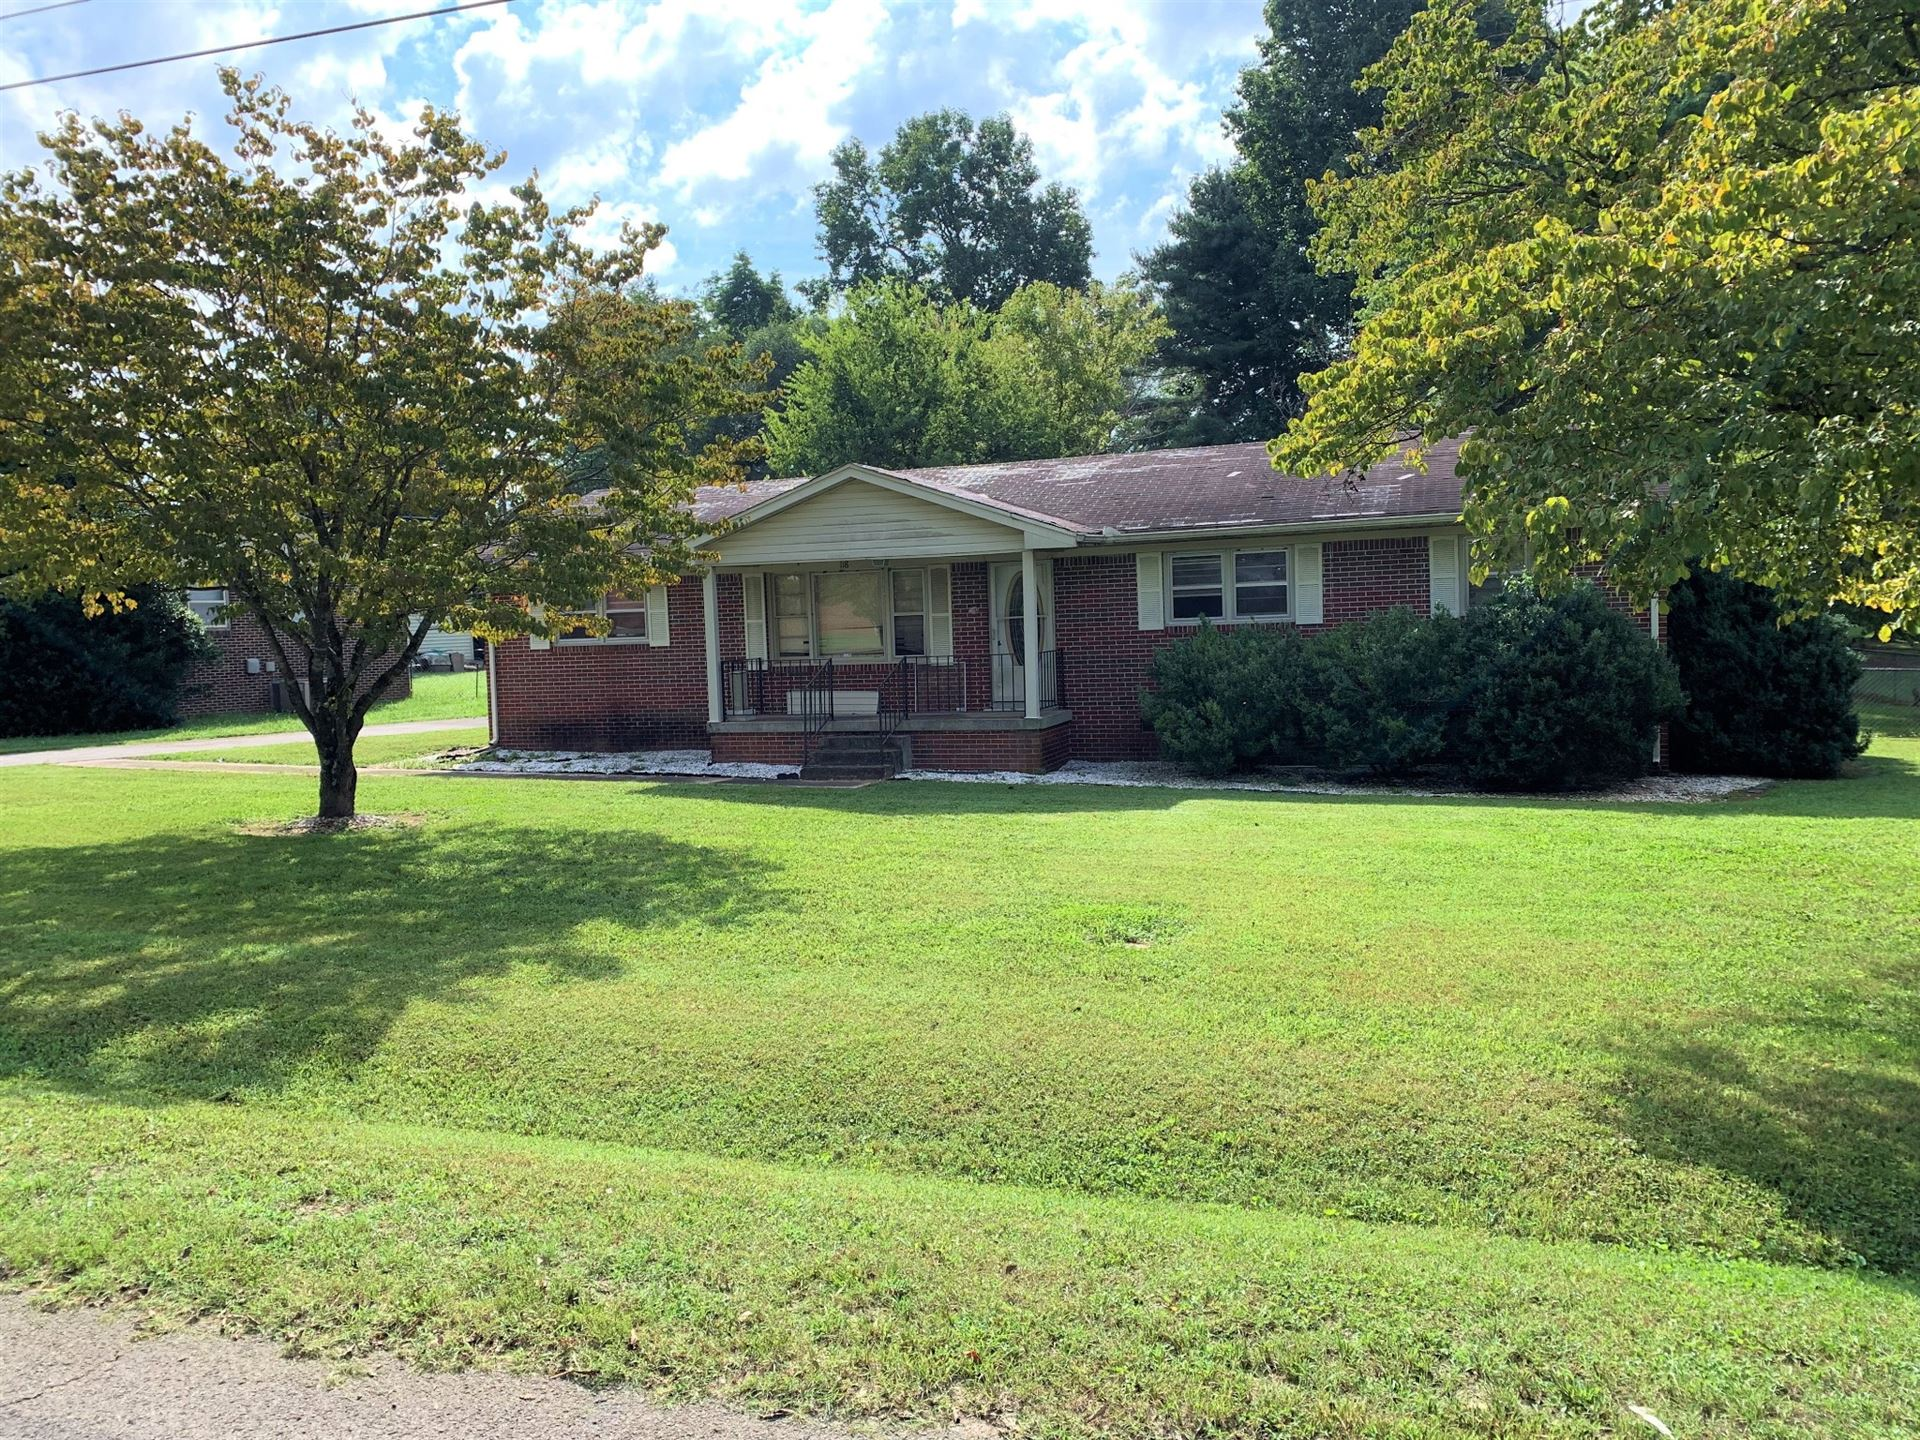 118 Mountain View Dr, Winchester, TN 37398 - MLS#: 2288163